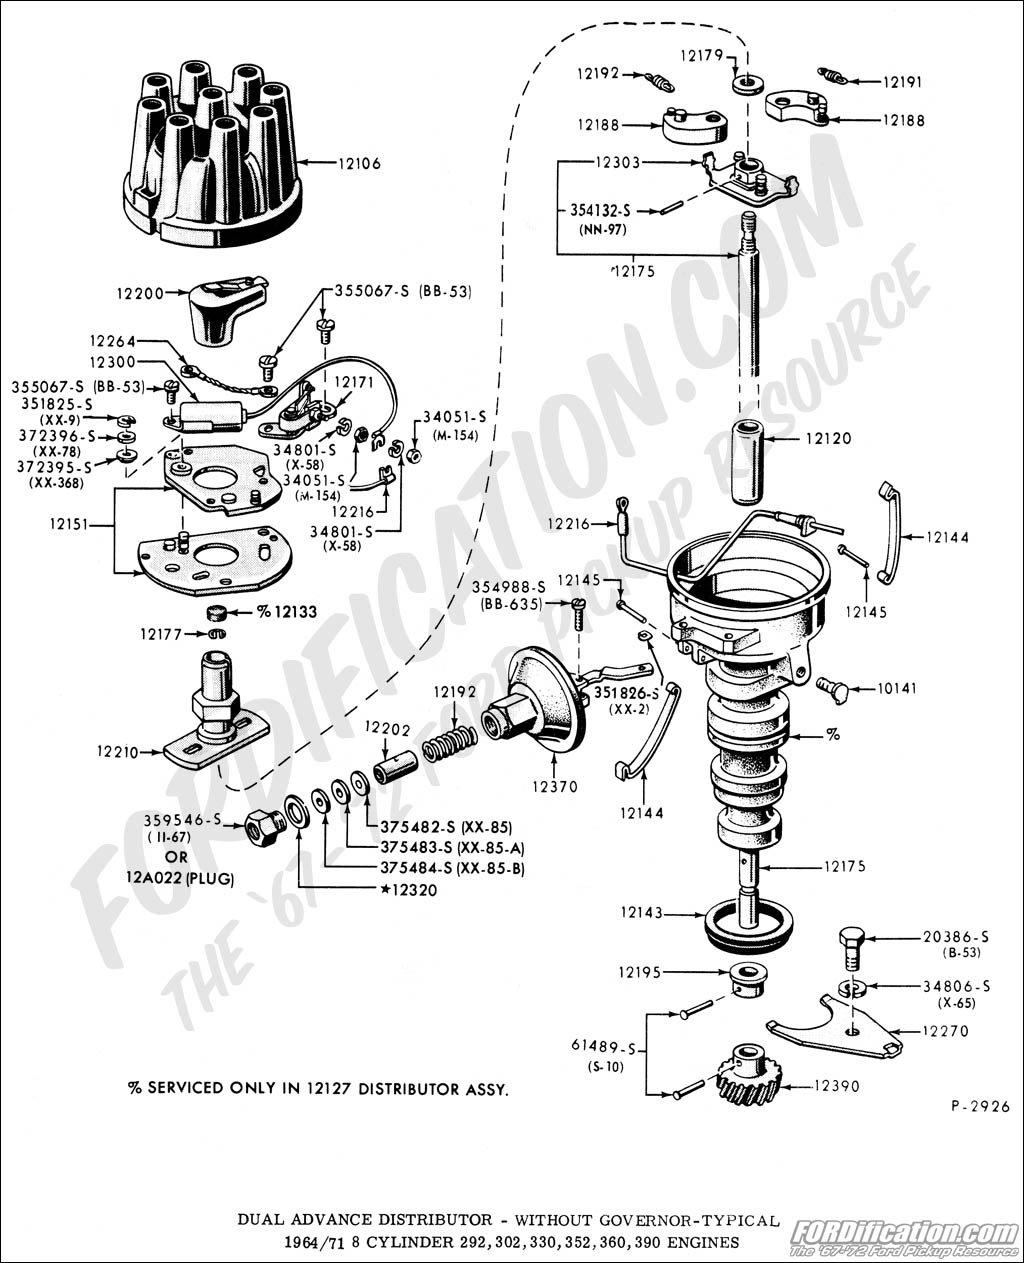 1971 ford f250 wiring diagram ford truck technical drawings and schematics section i  ford truck technical drawings and